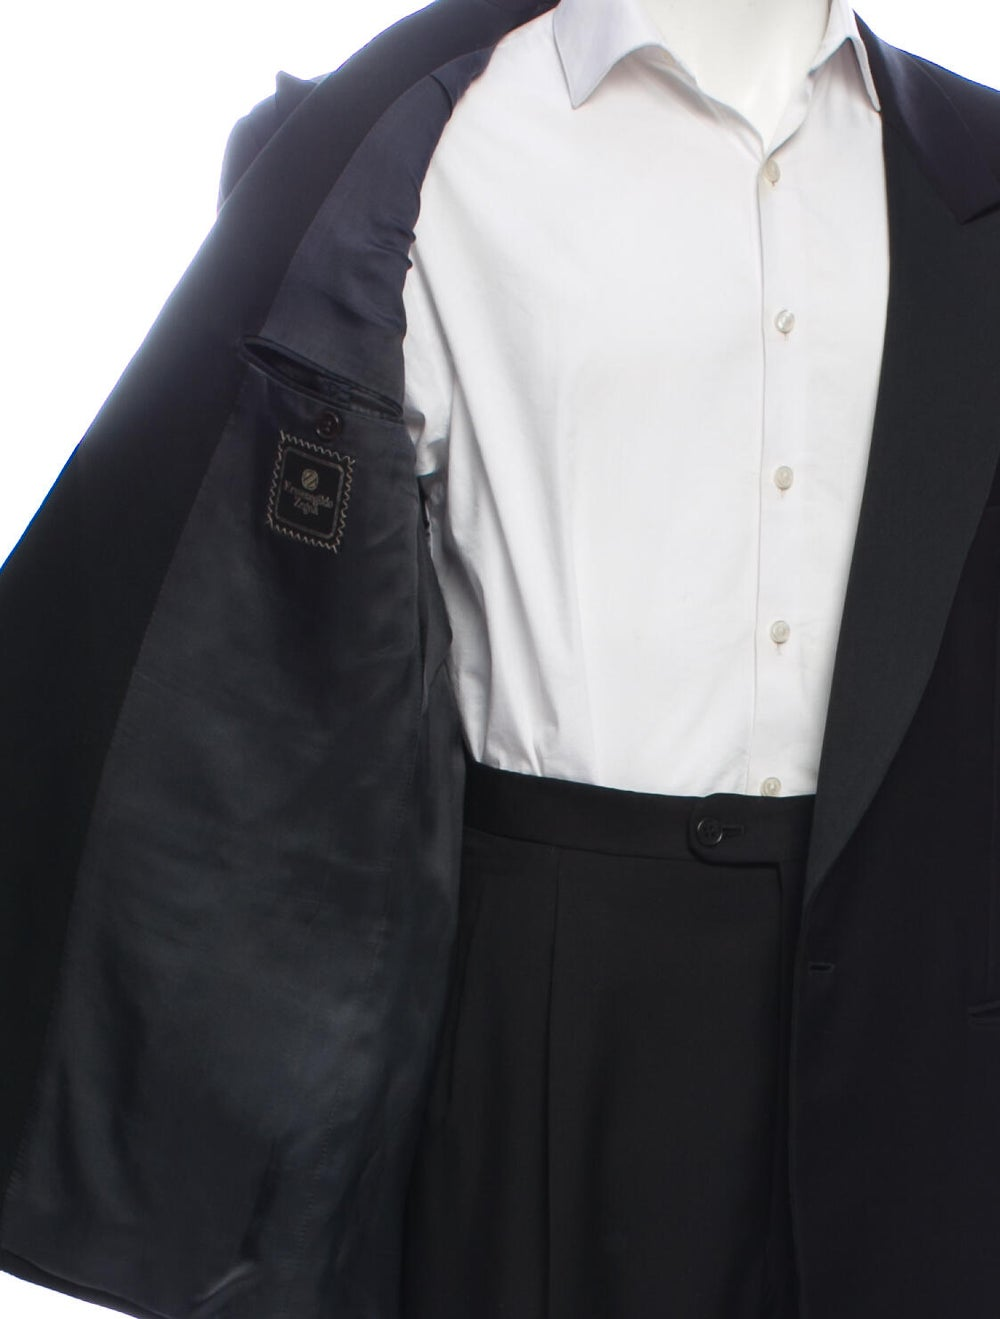 Ermenegildo Zegna Two-Piece Suit Black - image 5